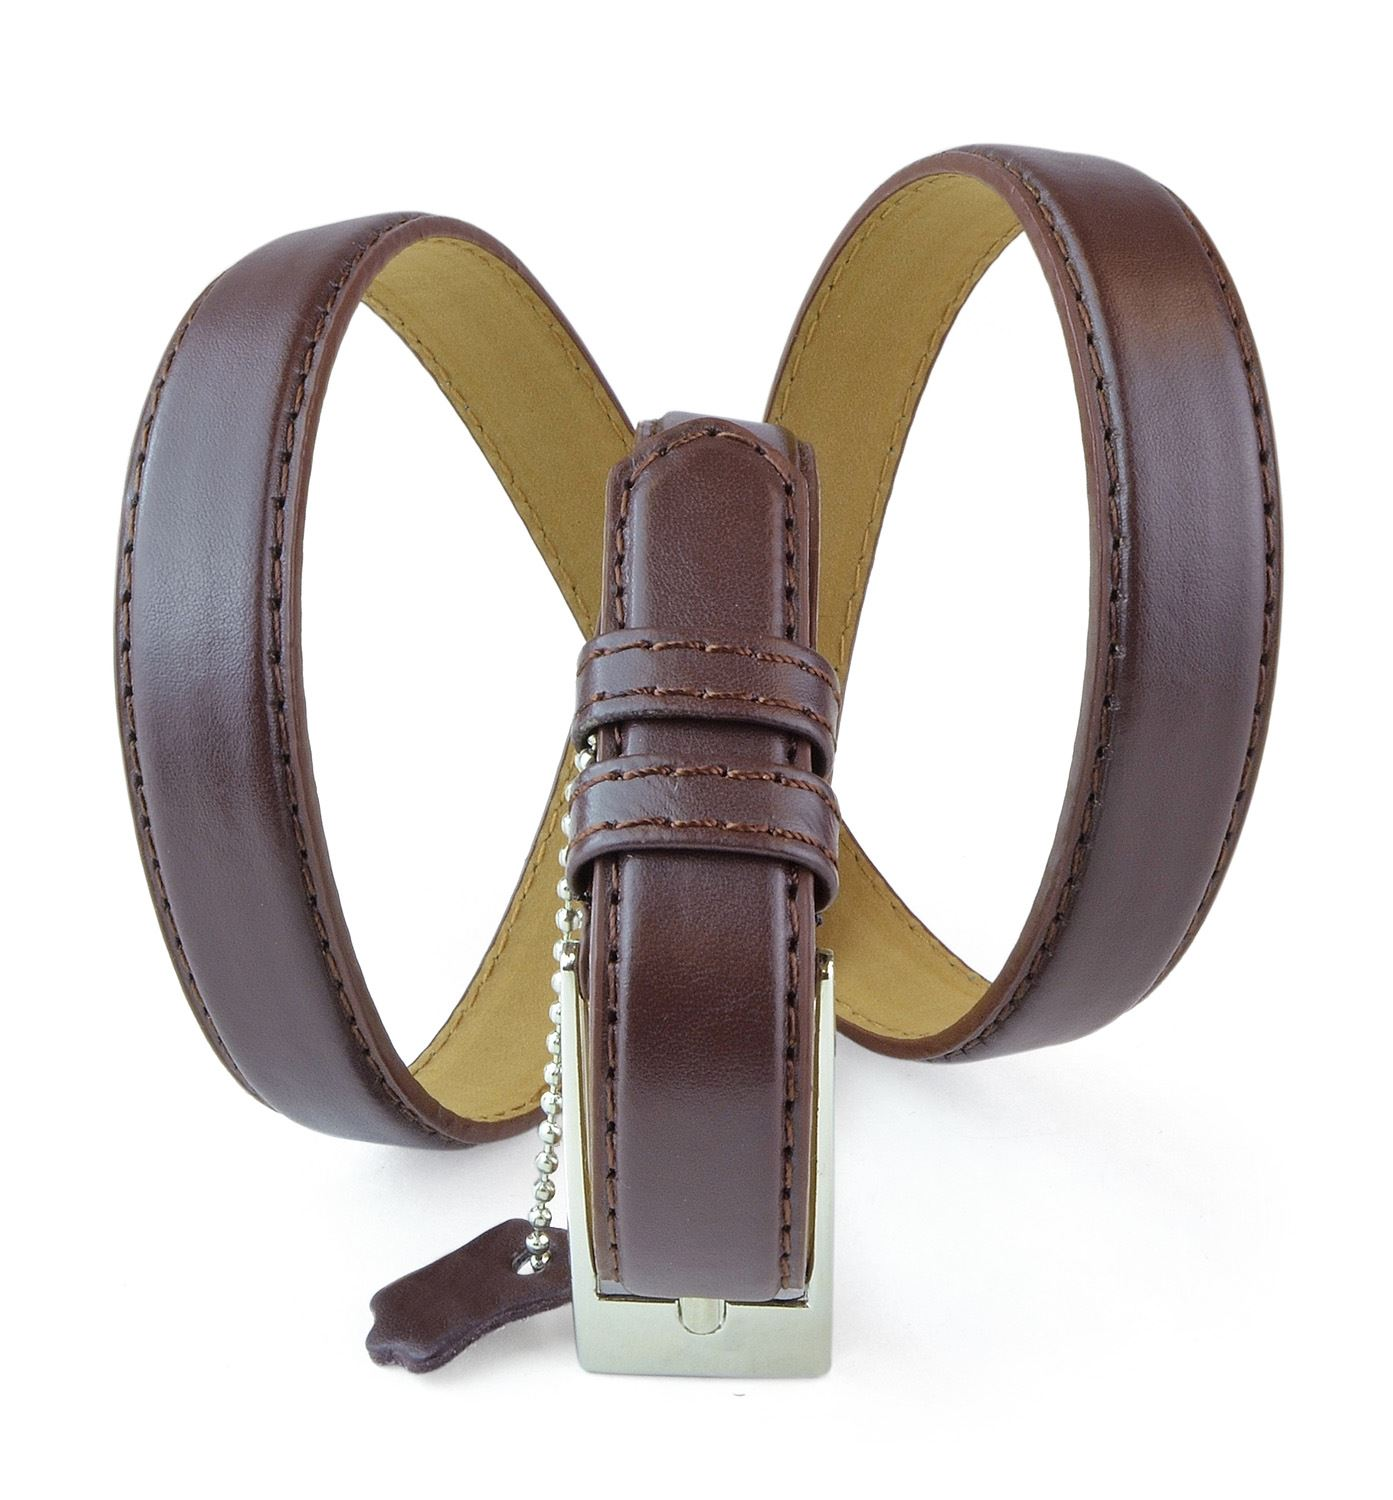 "Belle Donne - Women's Solid Color Faux Leather 3/4"" Belt - Brown - Medium"